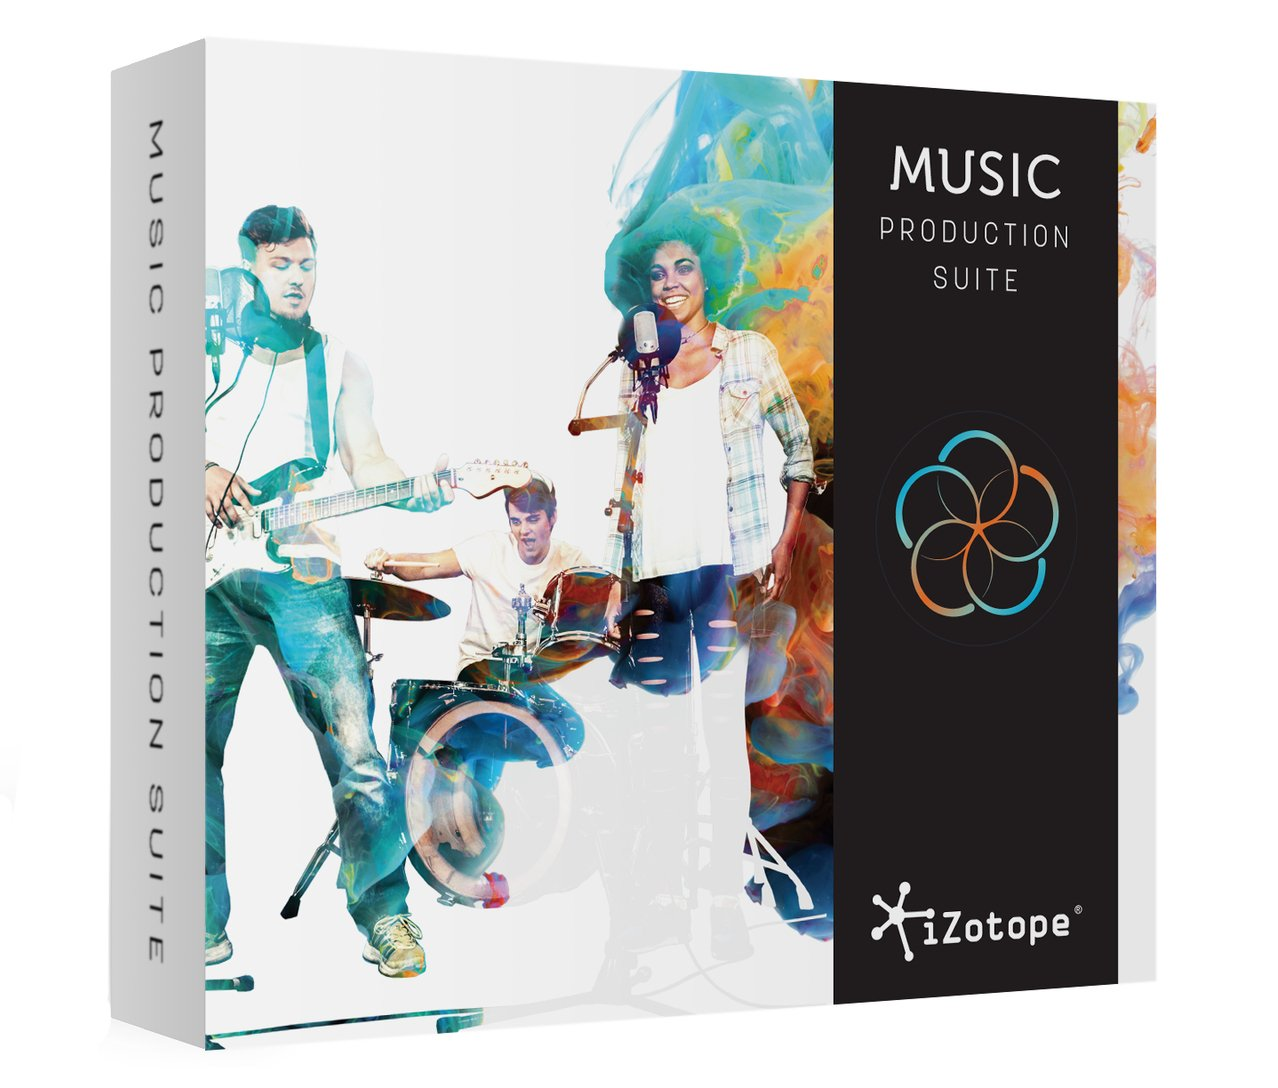 iZotope Music Production Suite Upgrade From MPB 1 Instant Rebate